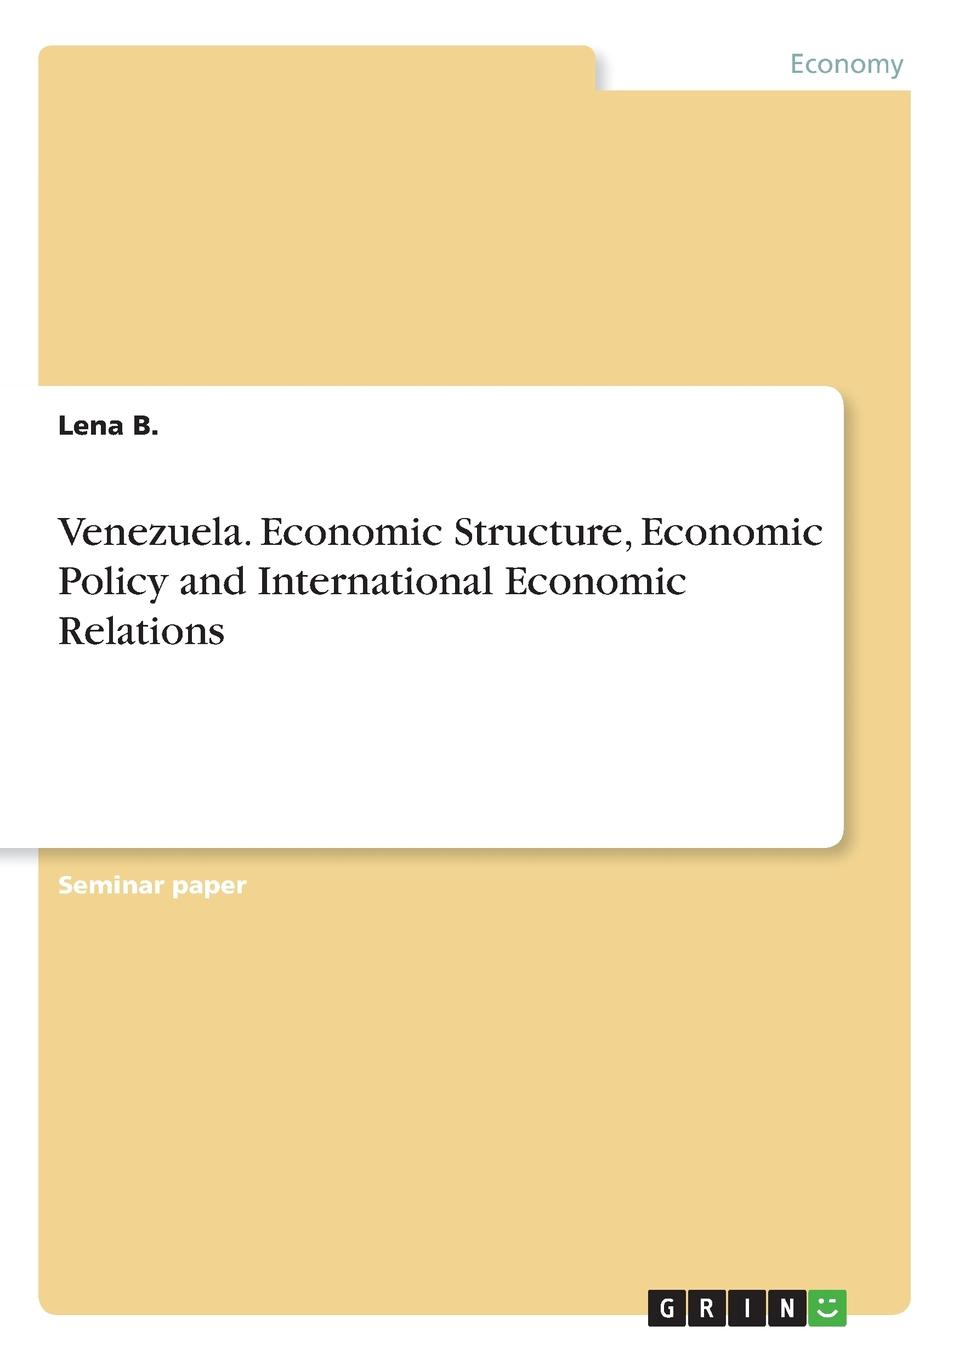 Lena B. Venezuela. Economic Structure, Economic Policy and International Economic Relations vishaal kishore ricardo s gauntlet economic fiction and the flawed case for free trade